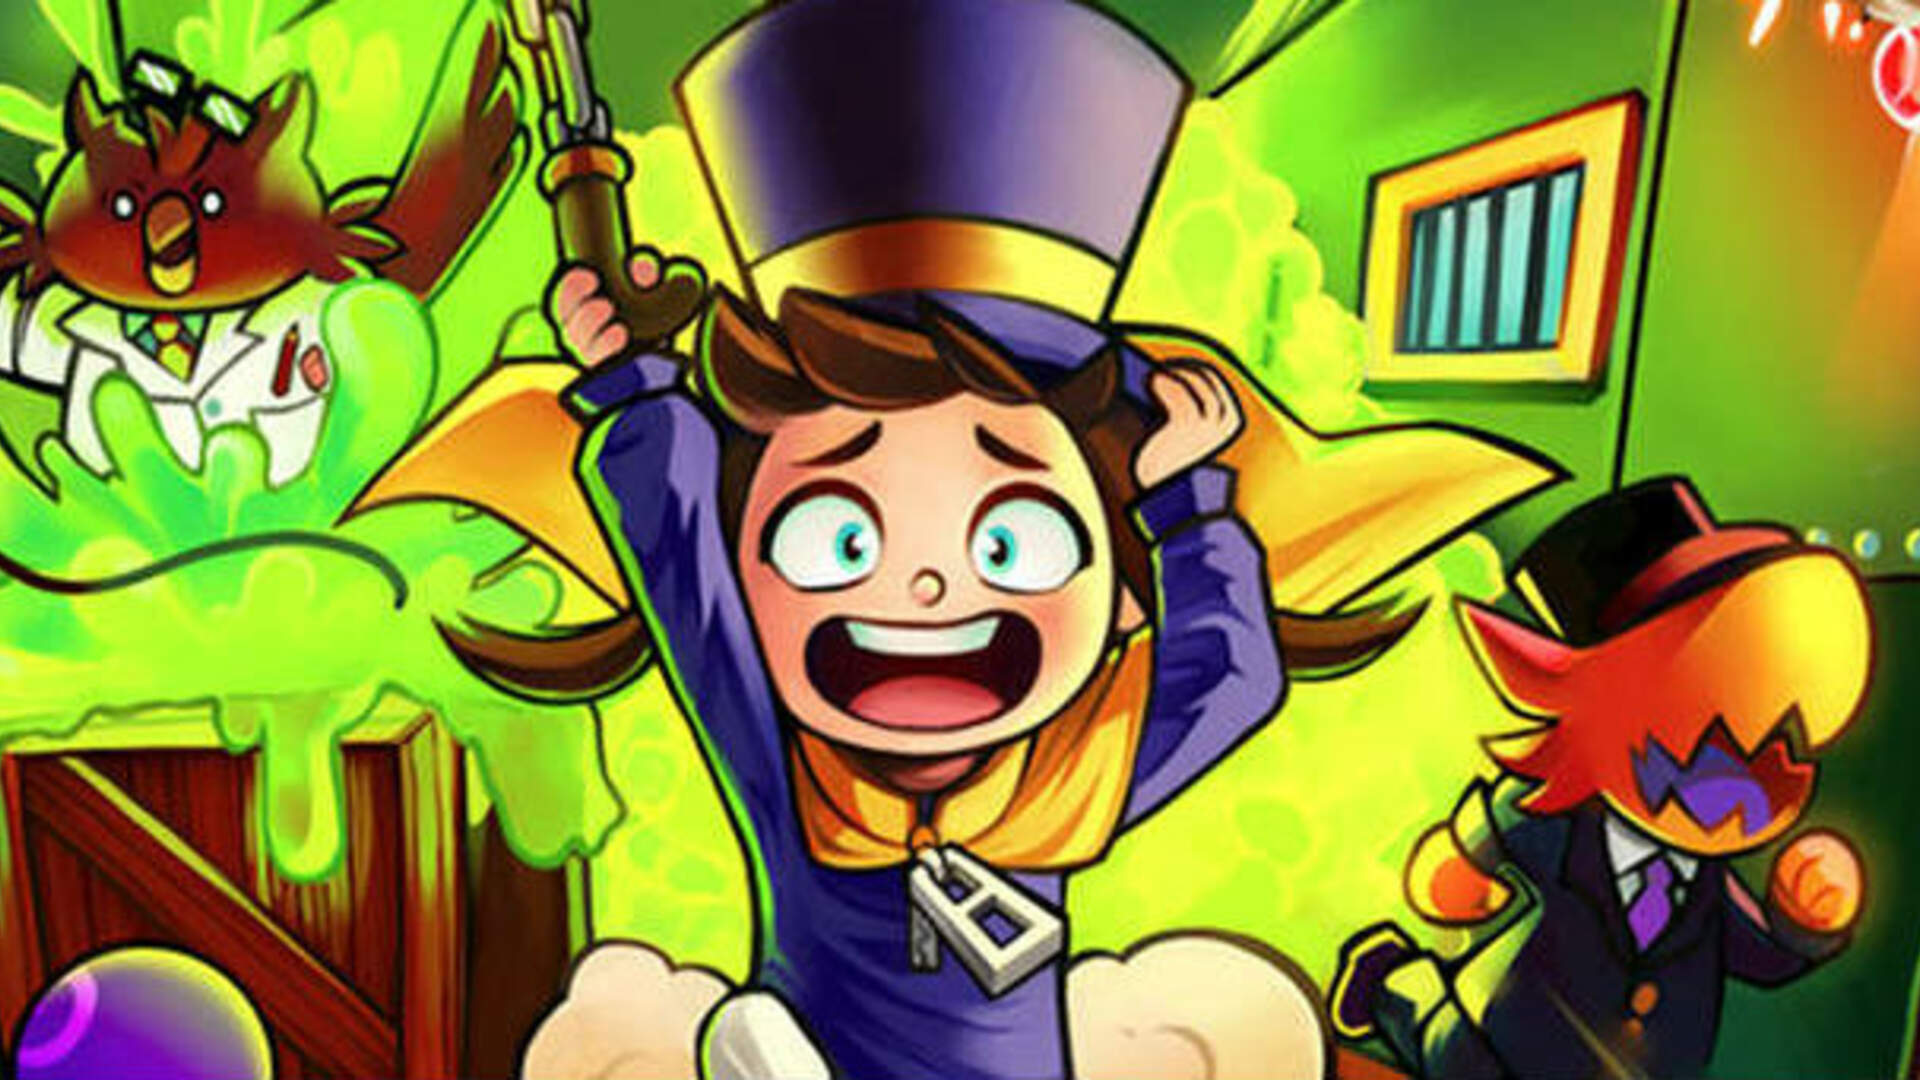 A Hat in Time's Developers Have Something to Say on August 20